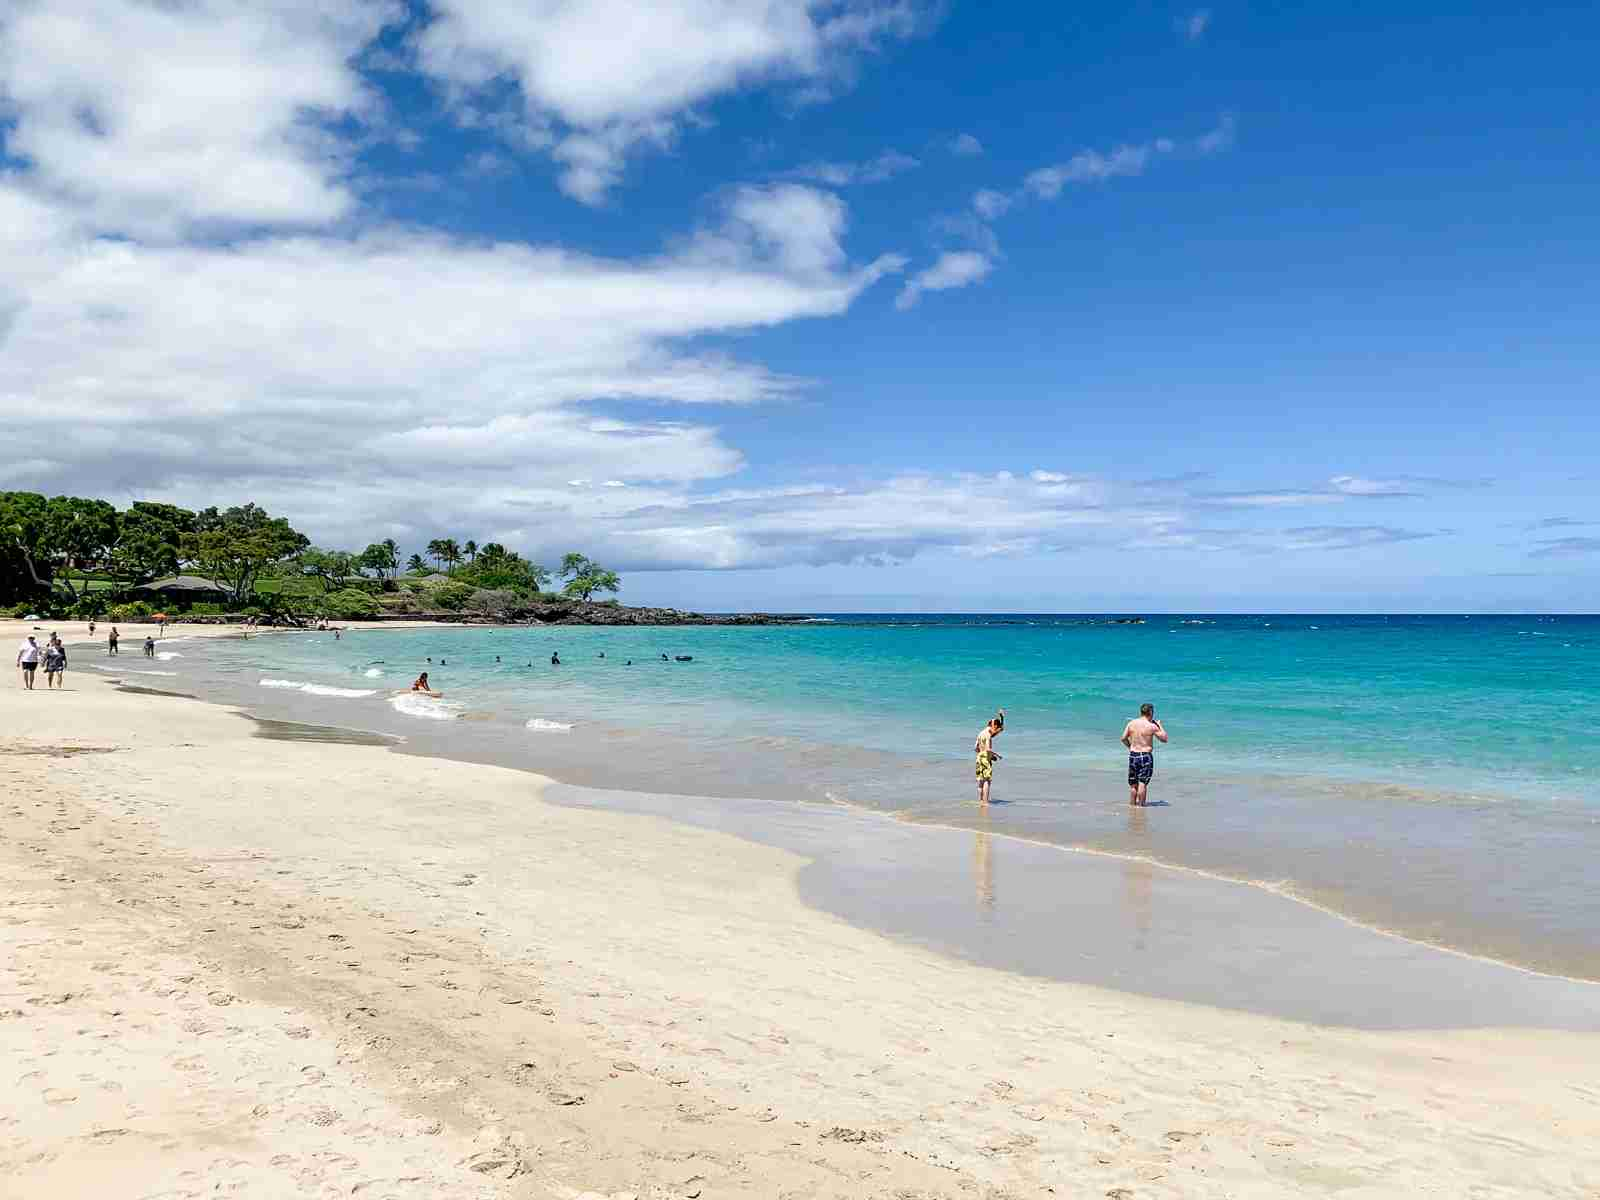 Beach at the nearby Mauna Kea (Photo by Summer Hull / The Points Guy)